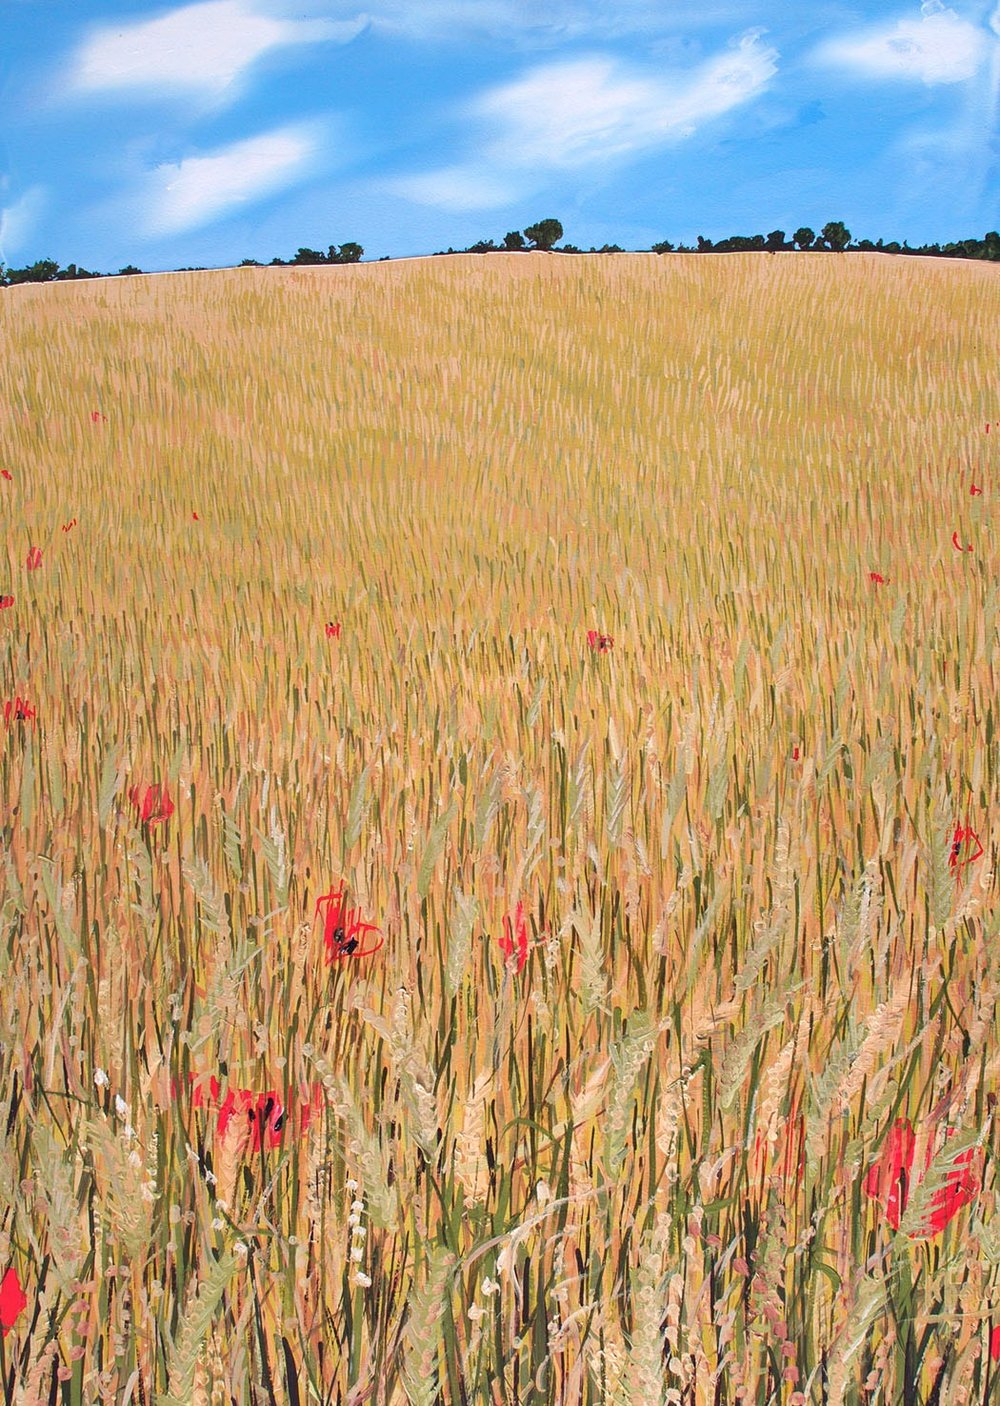 Wheat field with red poppies oil painting on board by artist Faisal Khouja